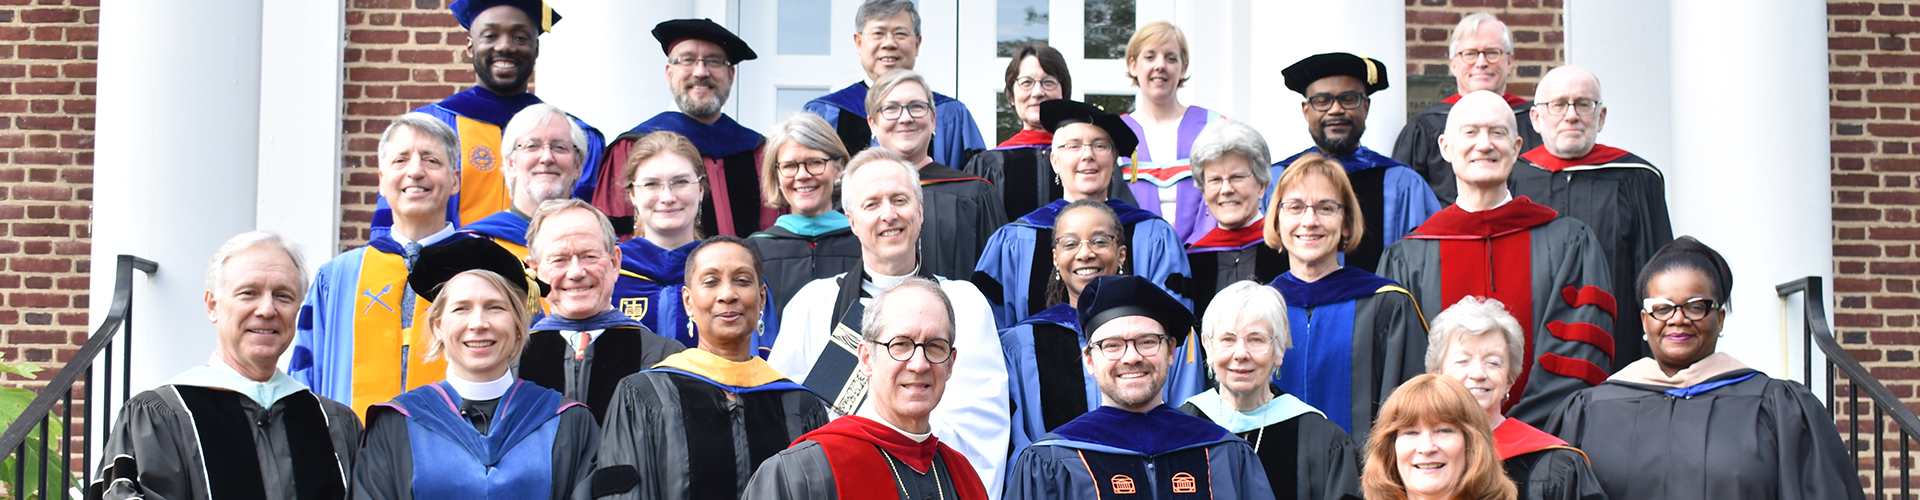 Faculty outside on stairs for group photo